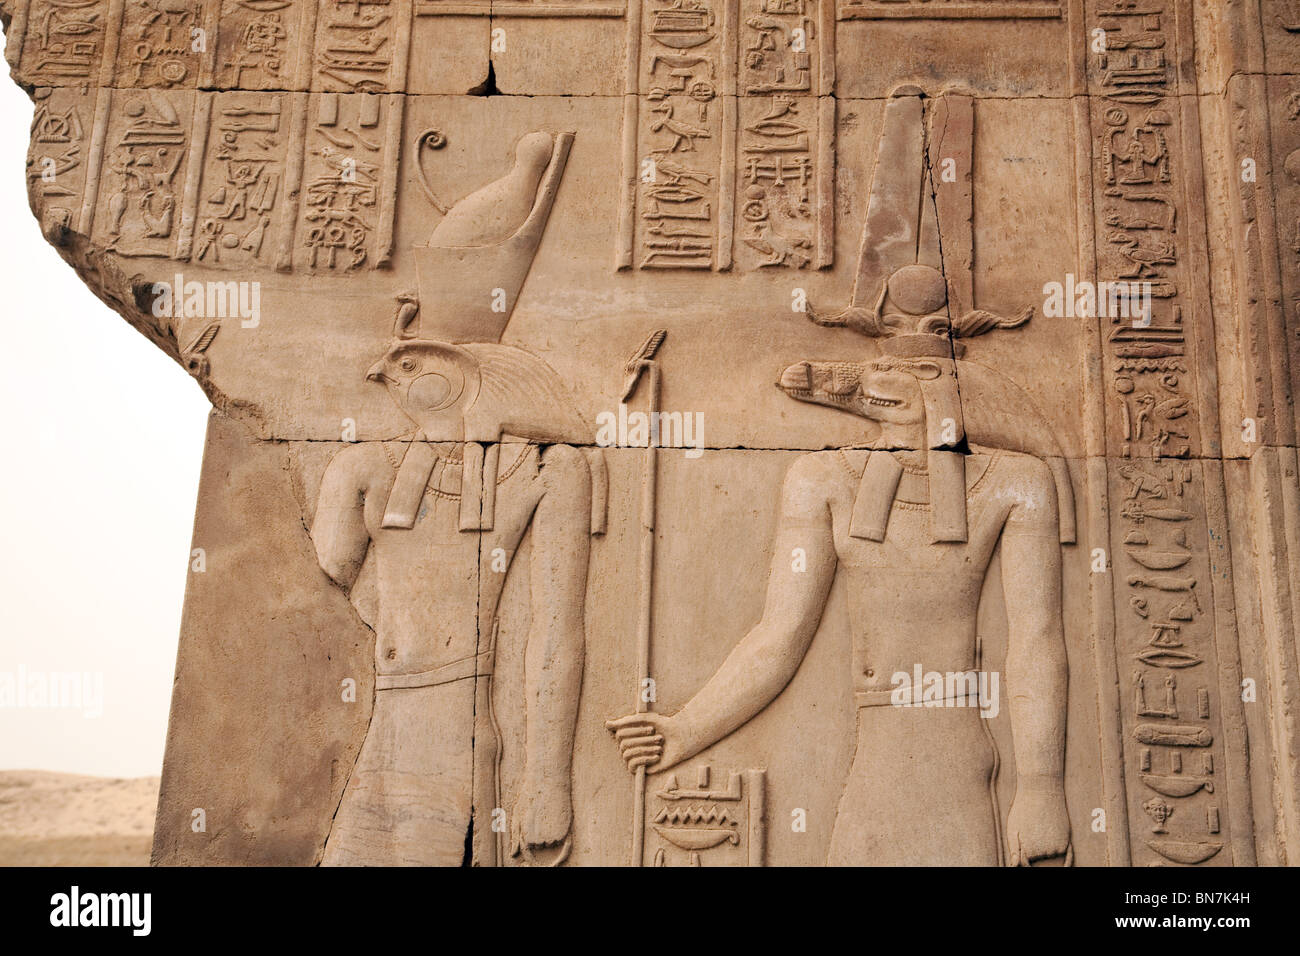 Bas relief alabaster carvings of the gods horus and sobek